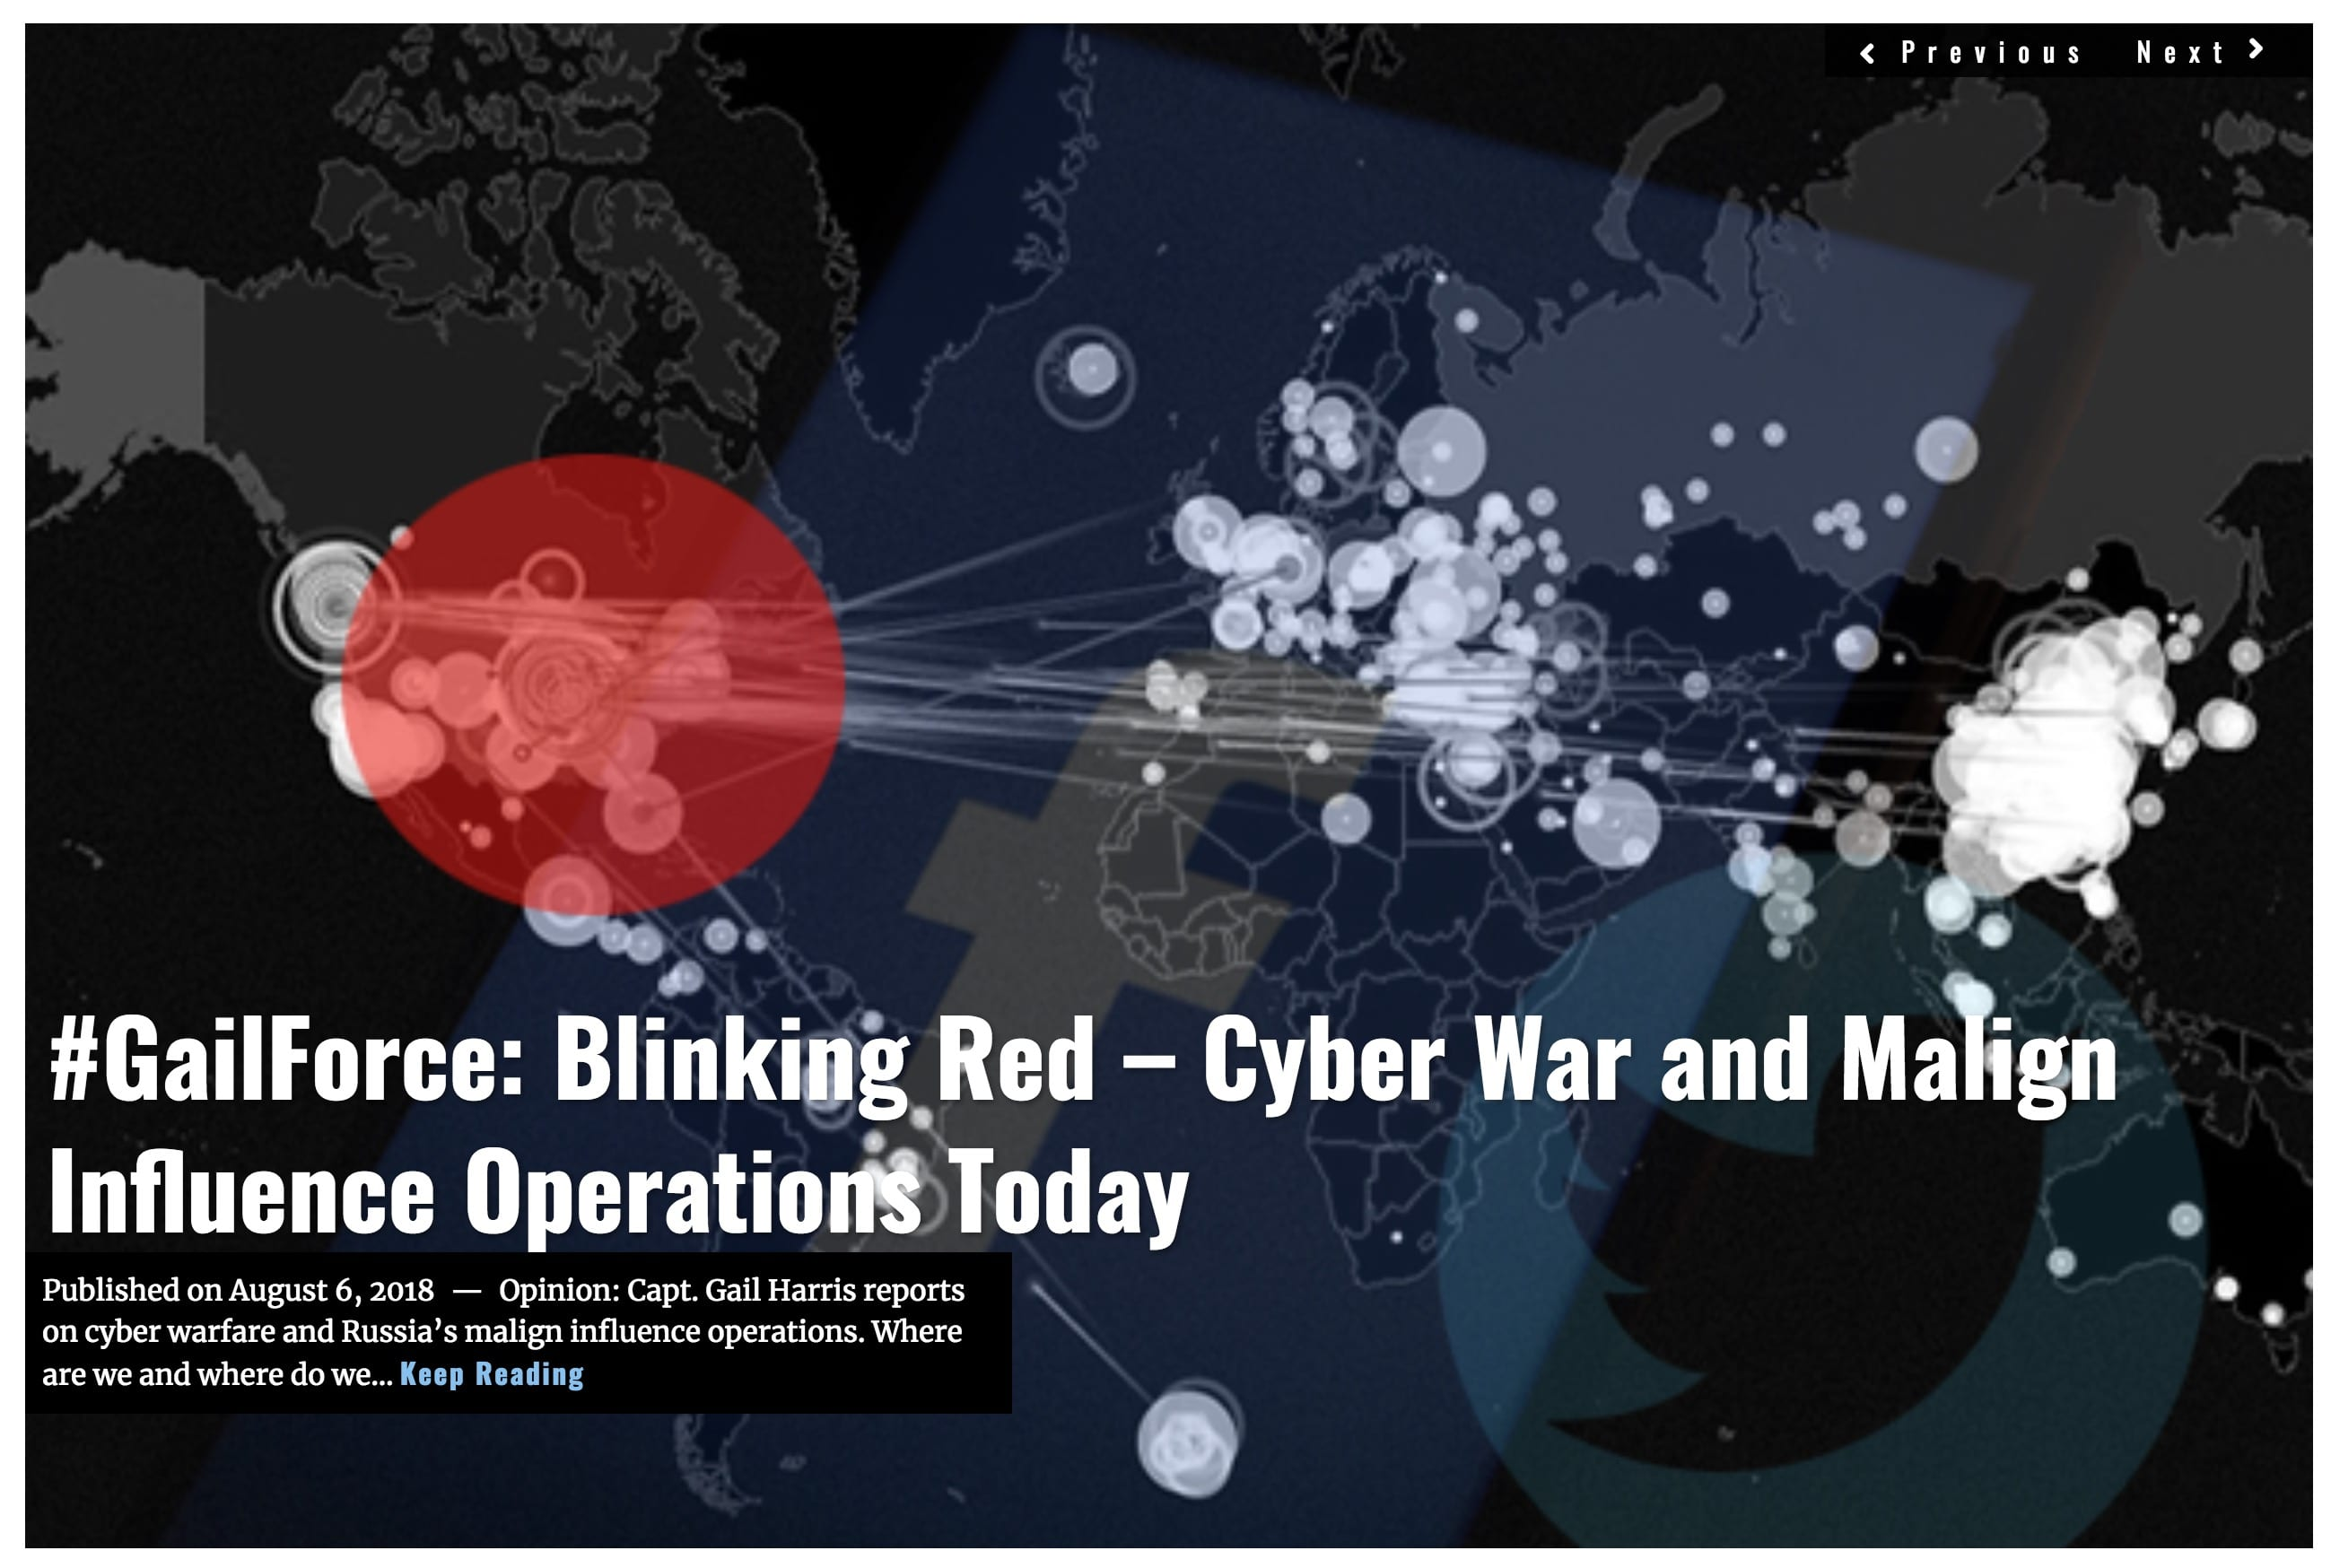 Image Lima Charlie News Headline GailForce Blinking Red - Cyber War and Malign Influence Operations Today AUG 6 2018